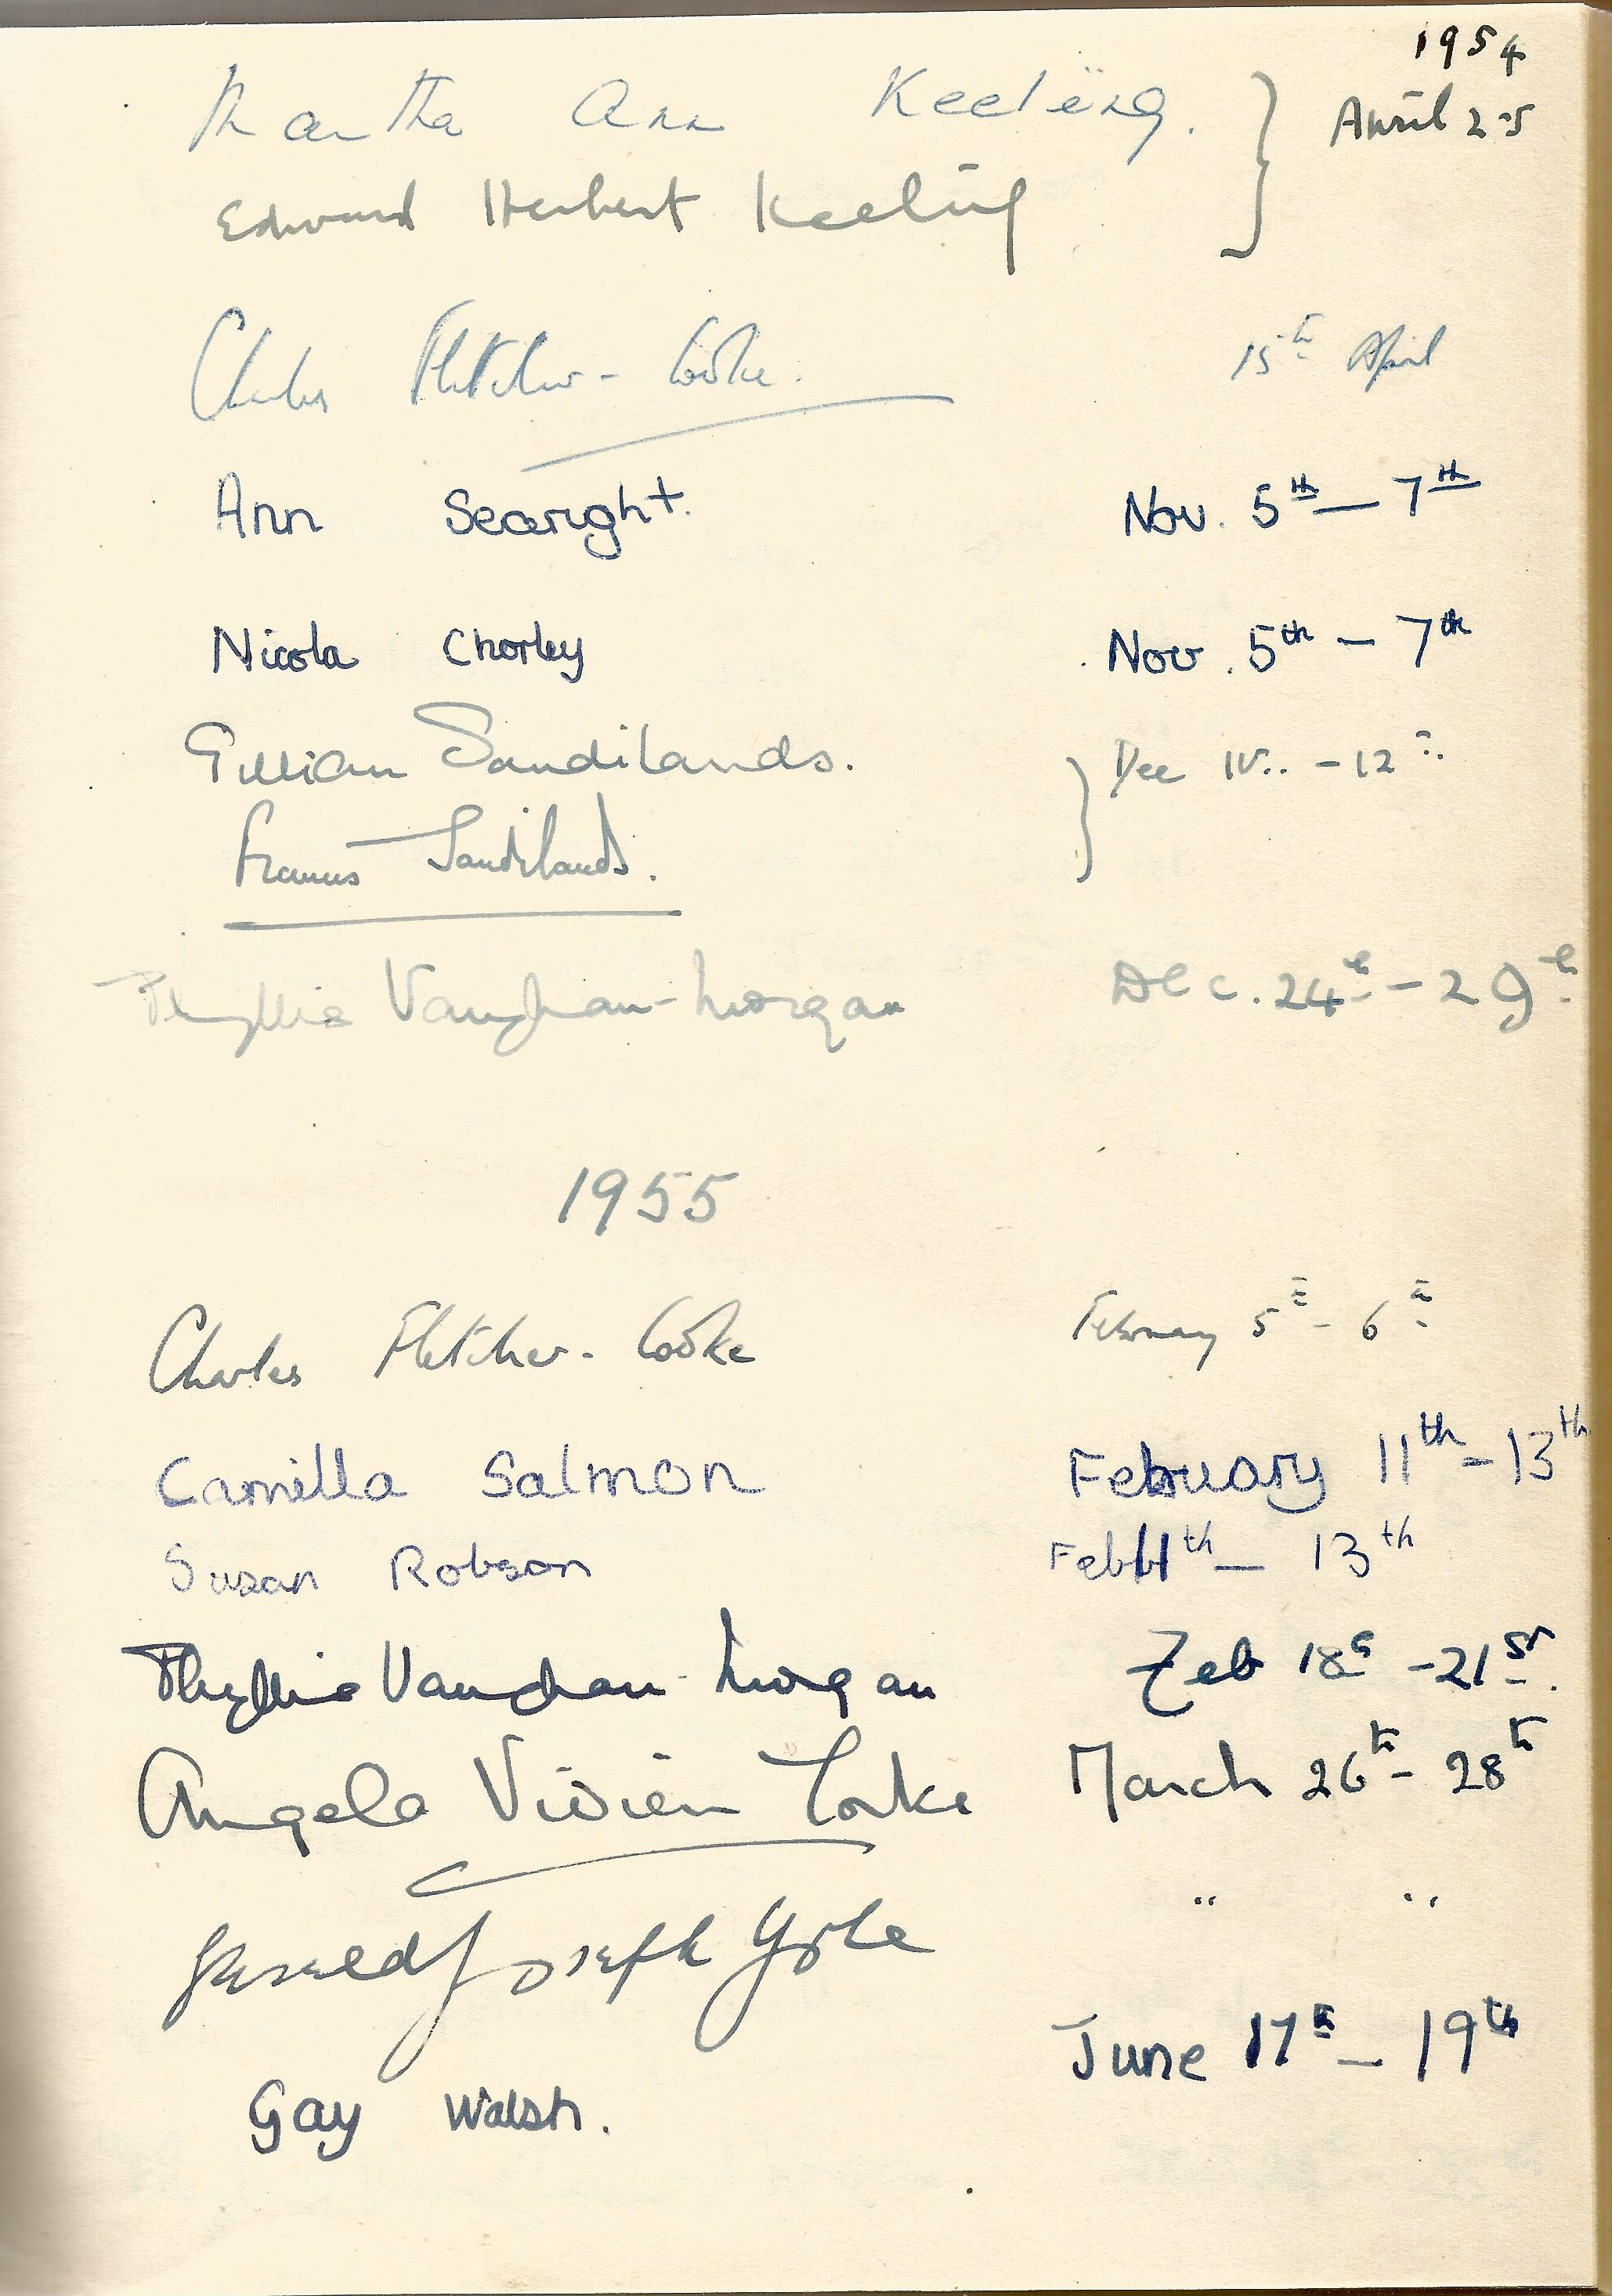 Hardback Book Expensively made visitors Book with slipcase JVM, EVM & 1949 in Gold Lettering on - Image 6 of 8